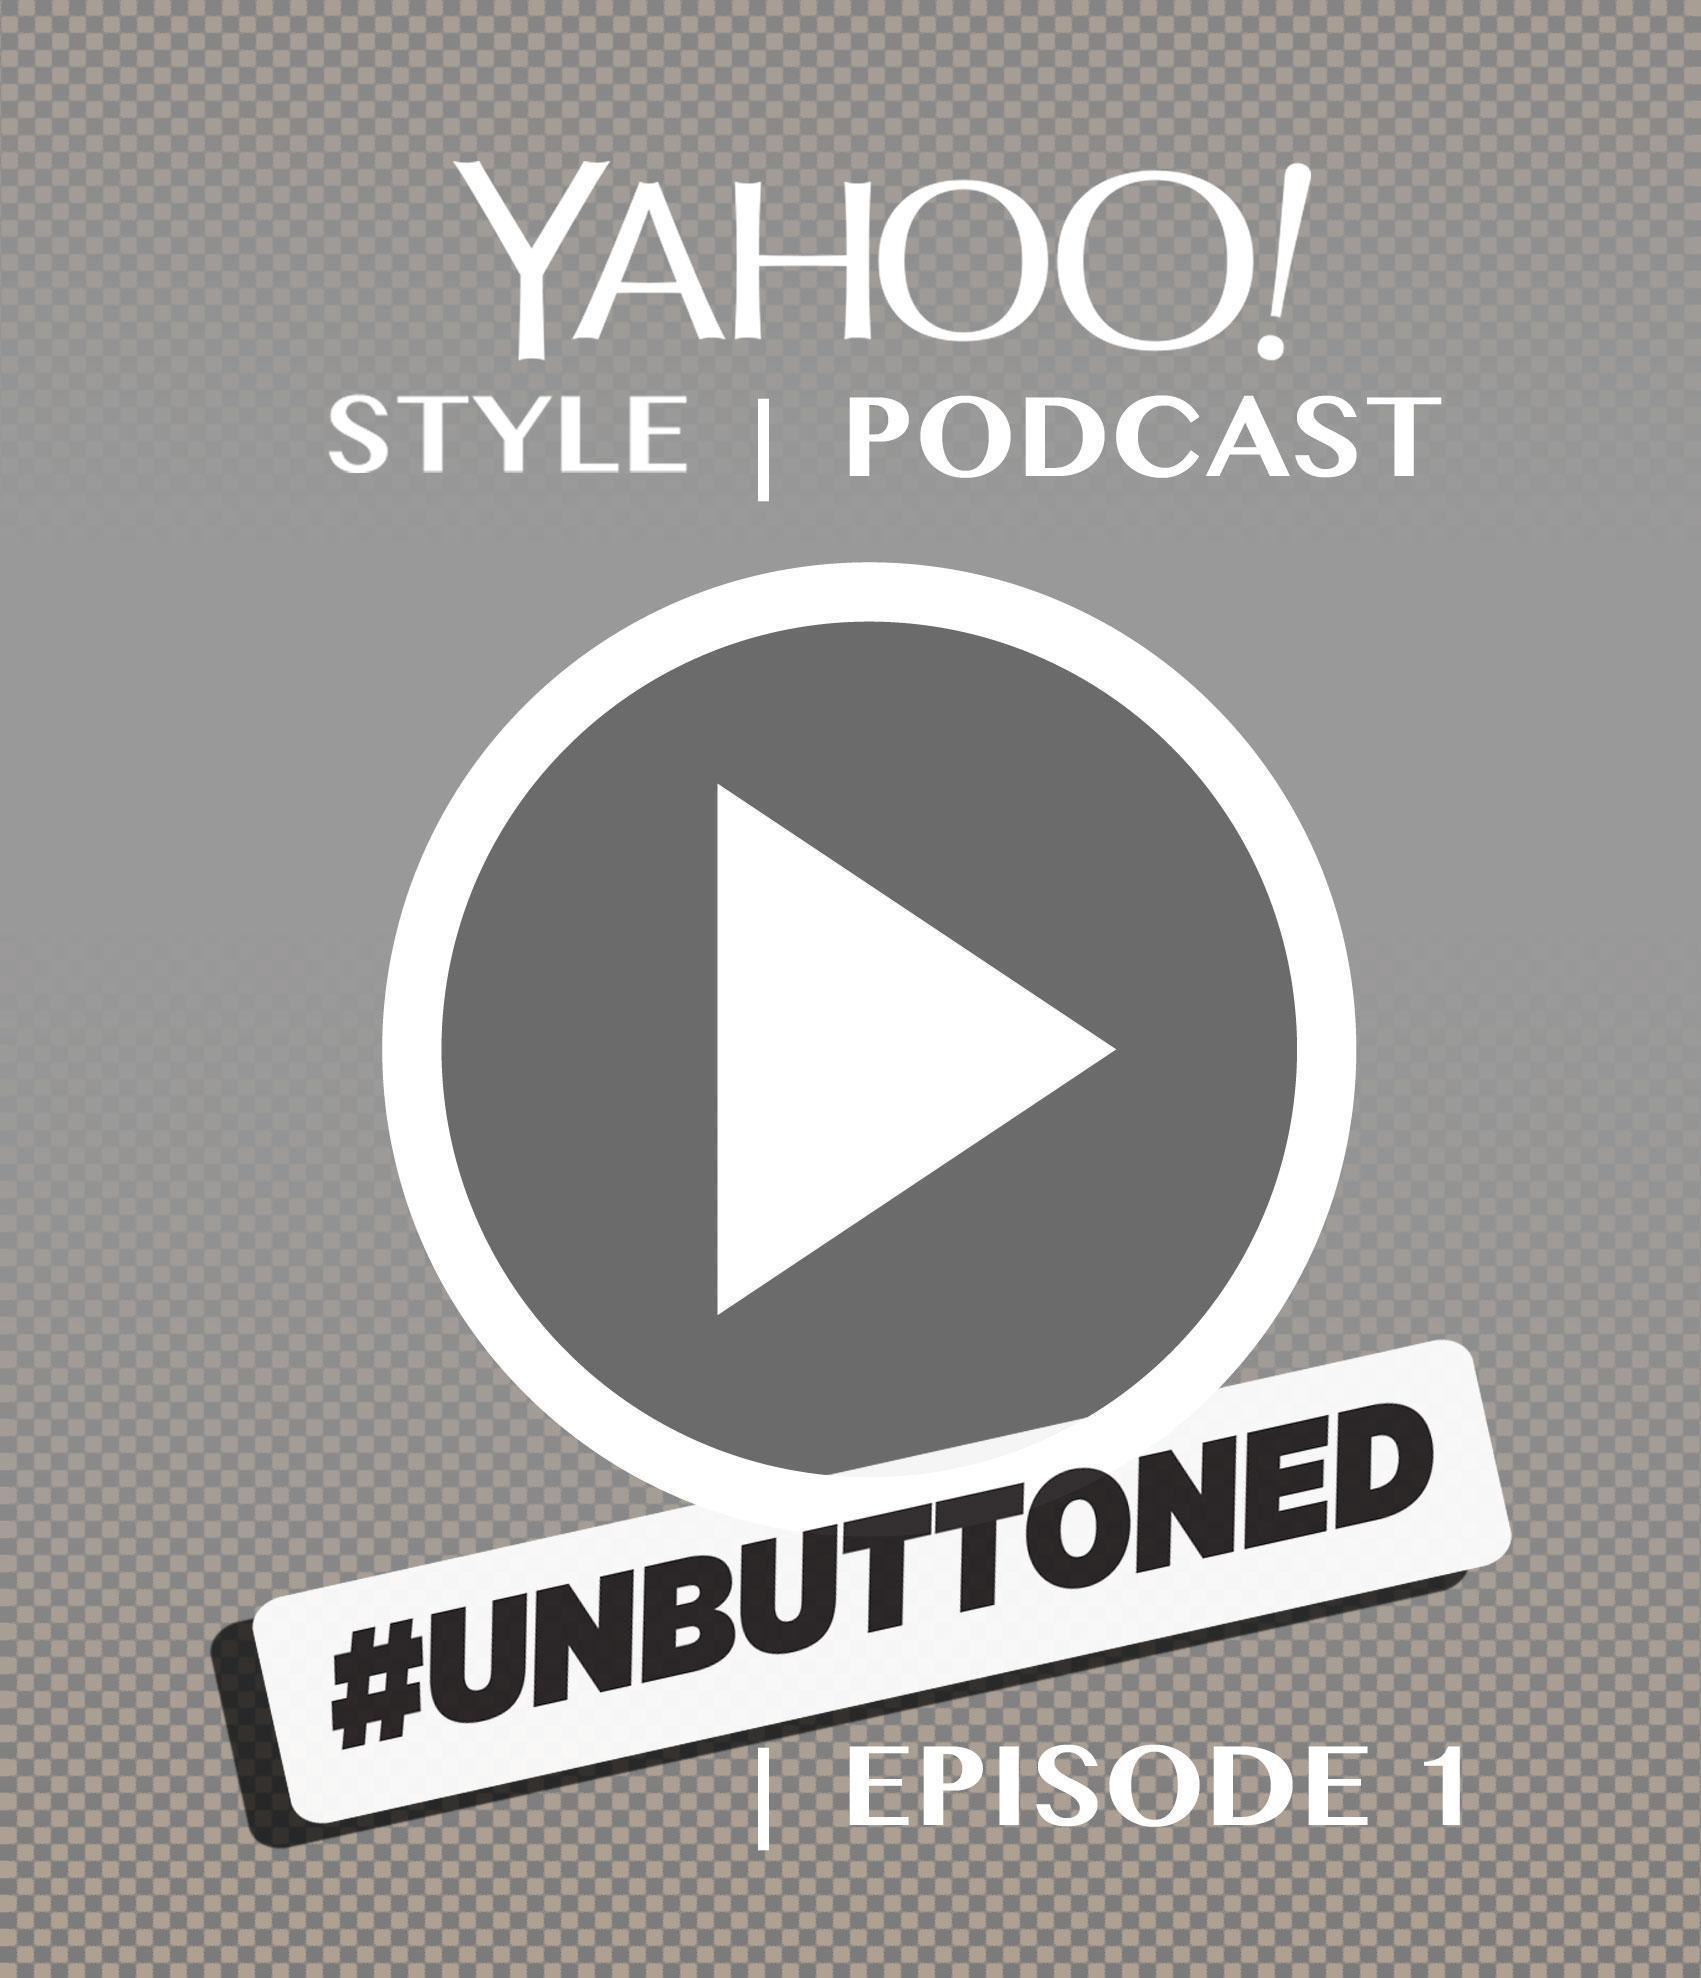 Listen to #Unbuttoned, Yahoo Style's New Podcast!